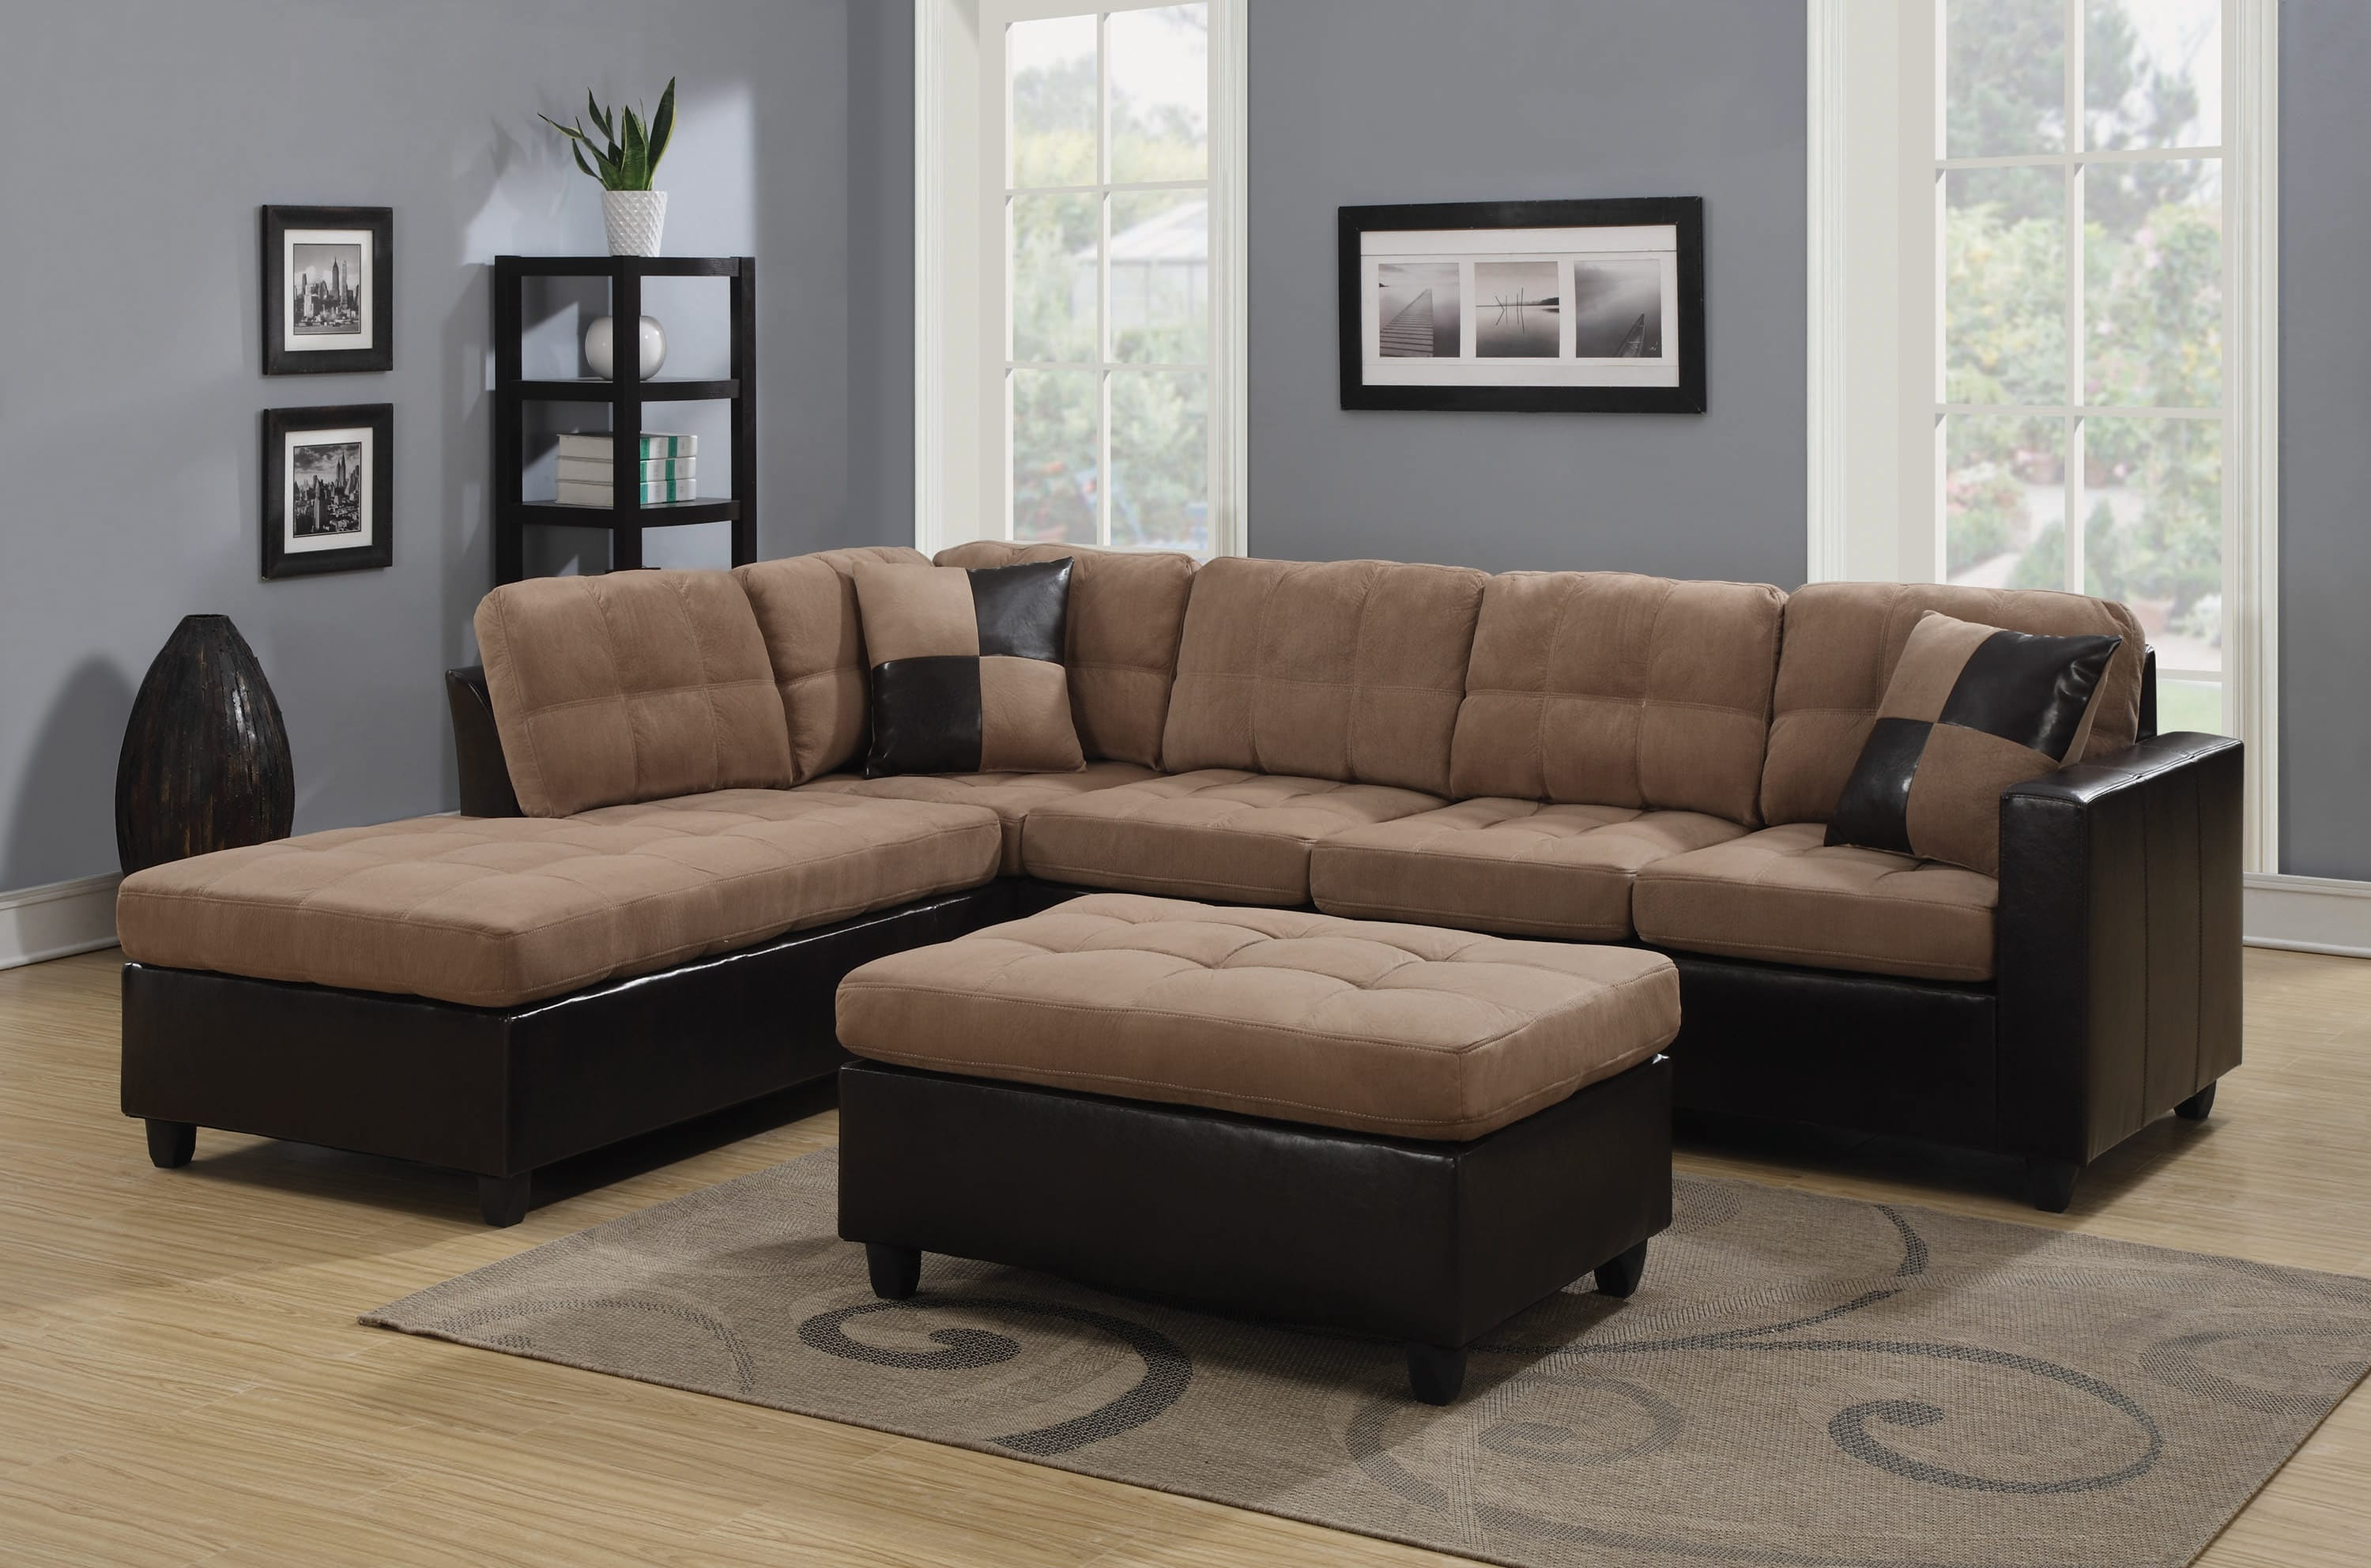 Mallory Upholstered Tan & Dark Brown Sectional Sofa by Coaster Fine  Furniture